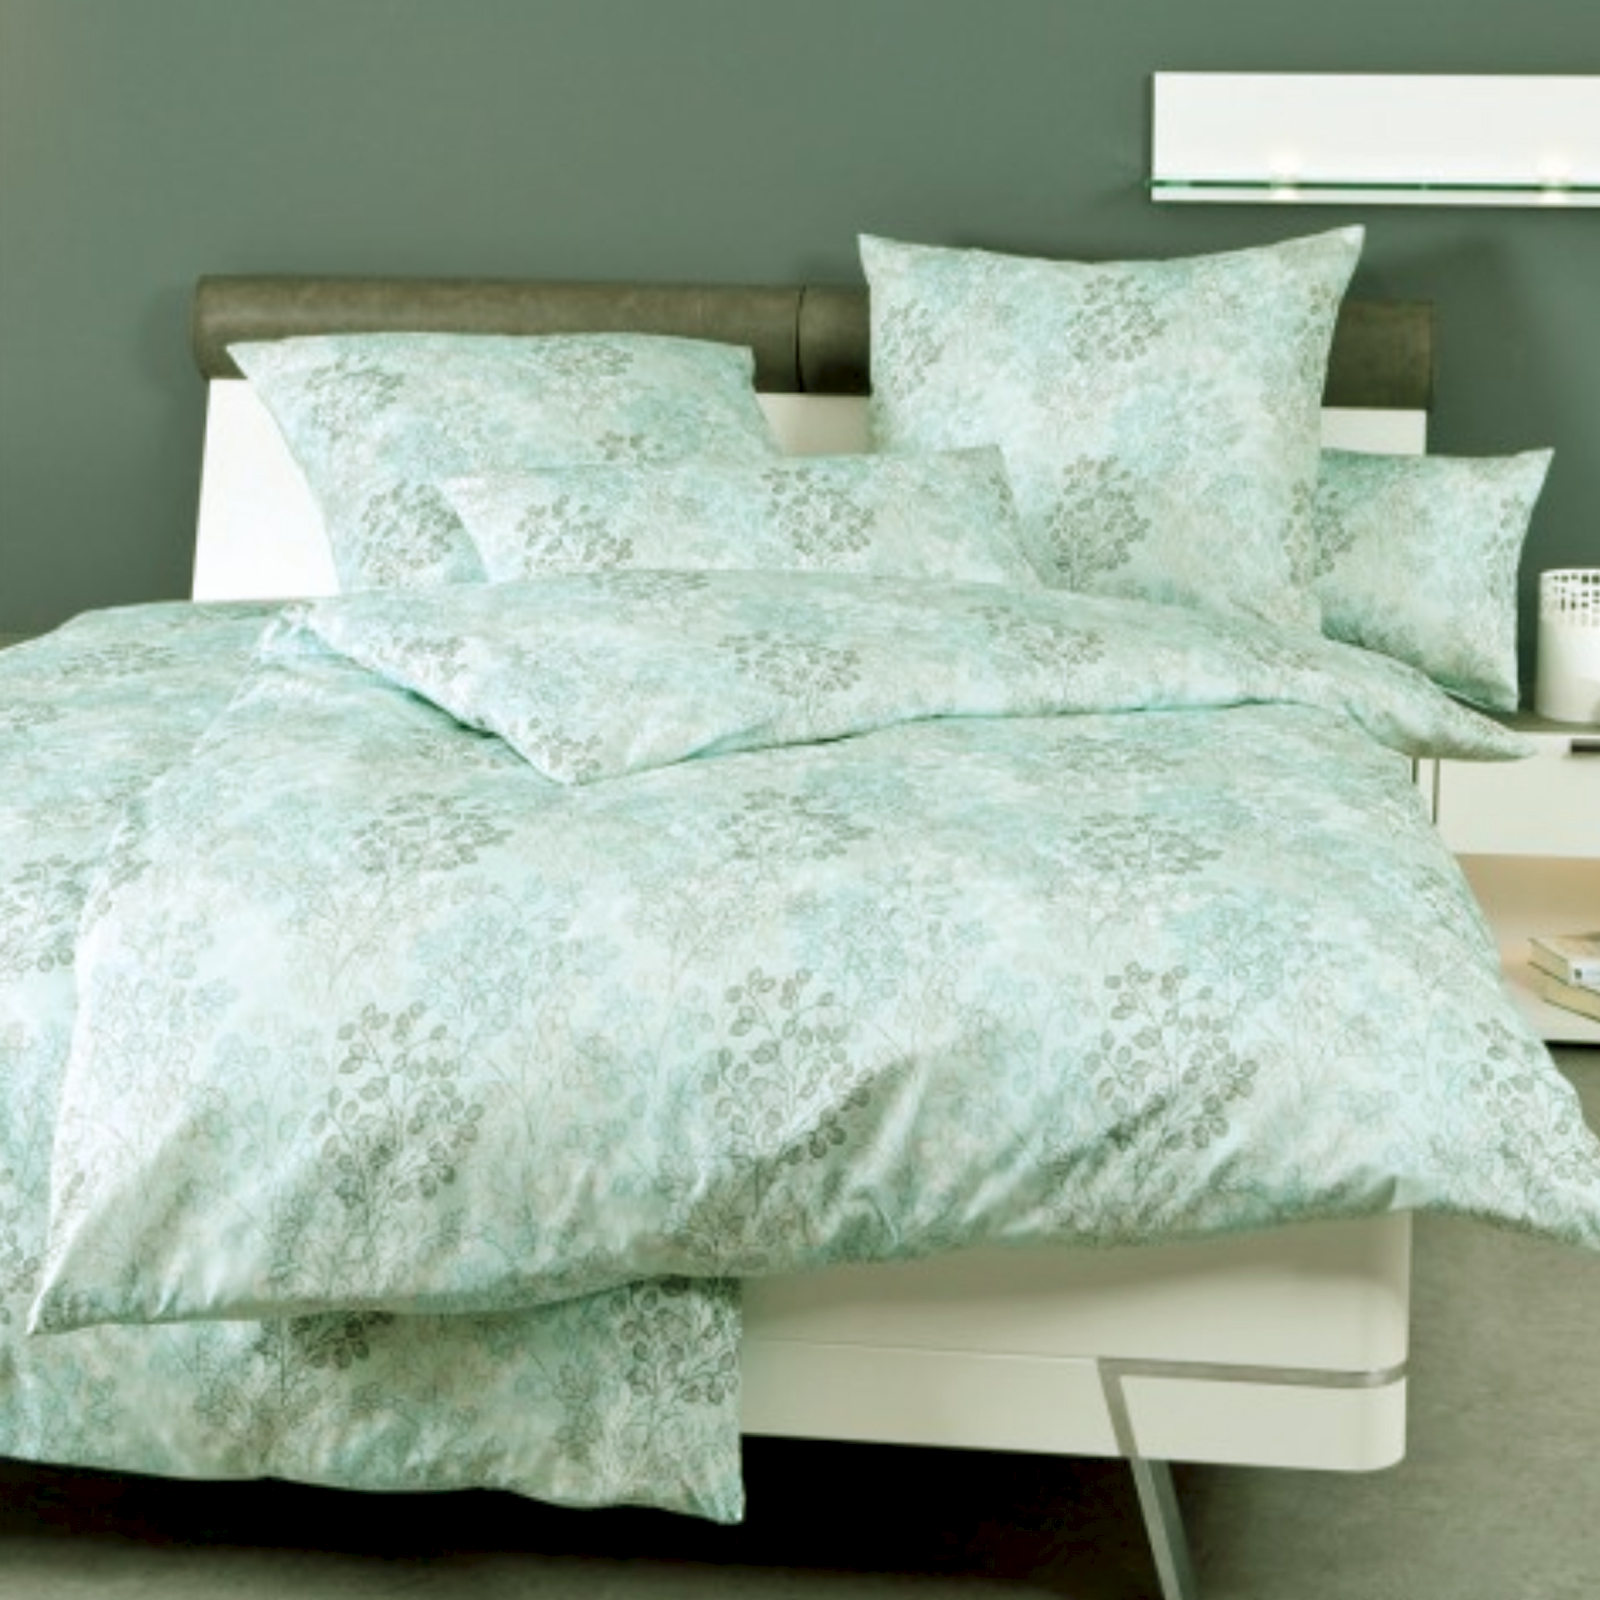 Janine Mako Satin Bed Cover Messina 4866 Pastel Turquoise Graphite Ebay